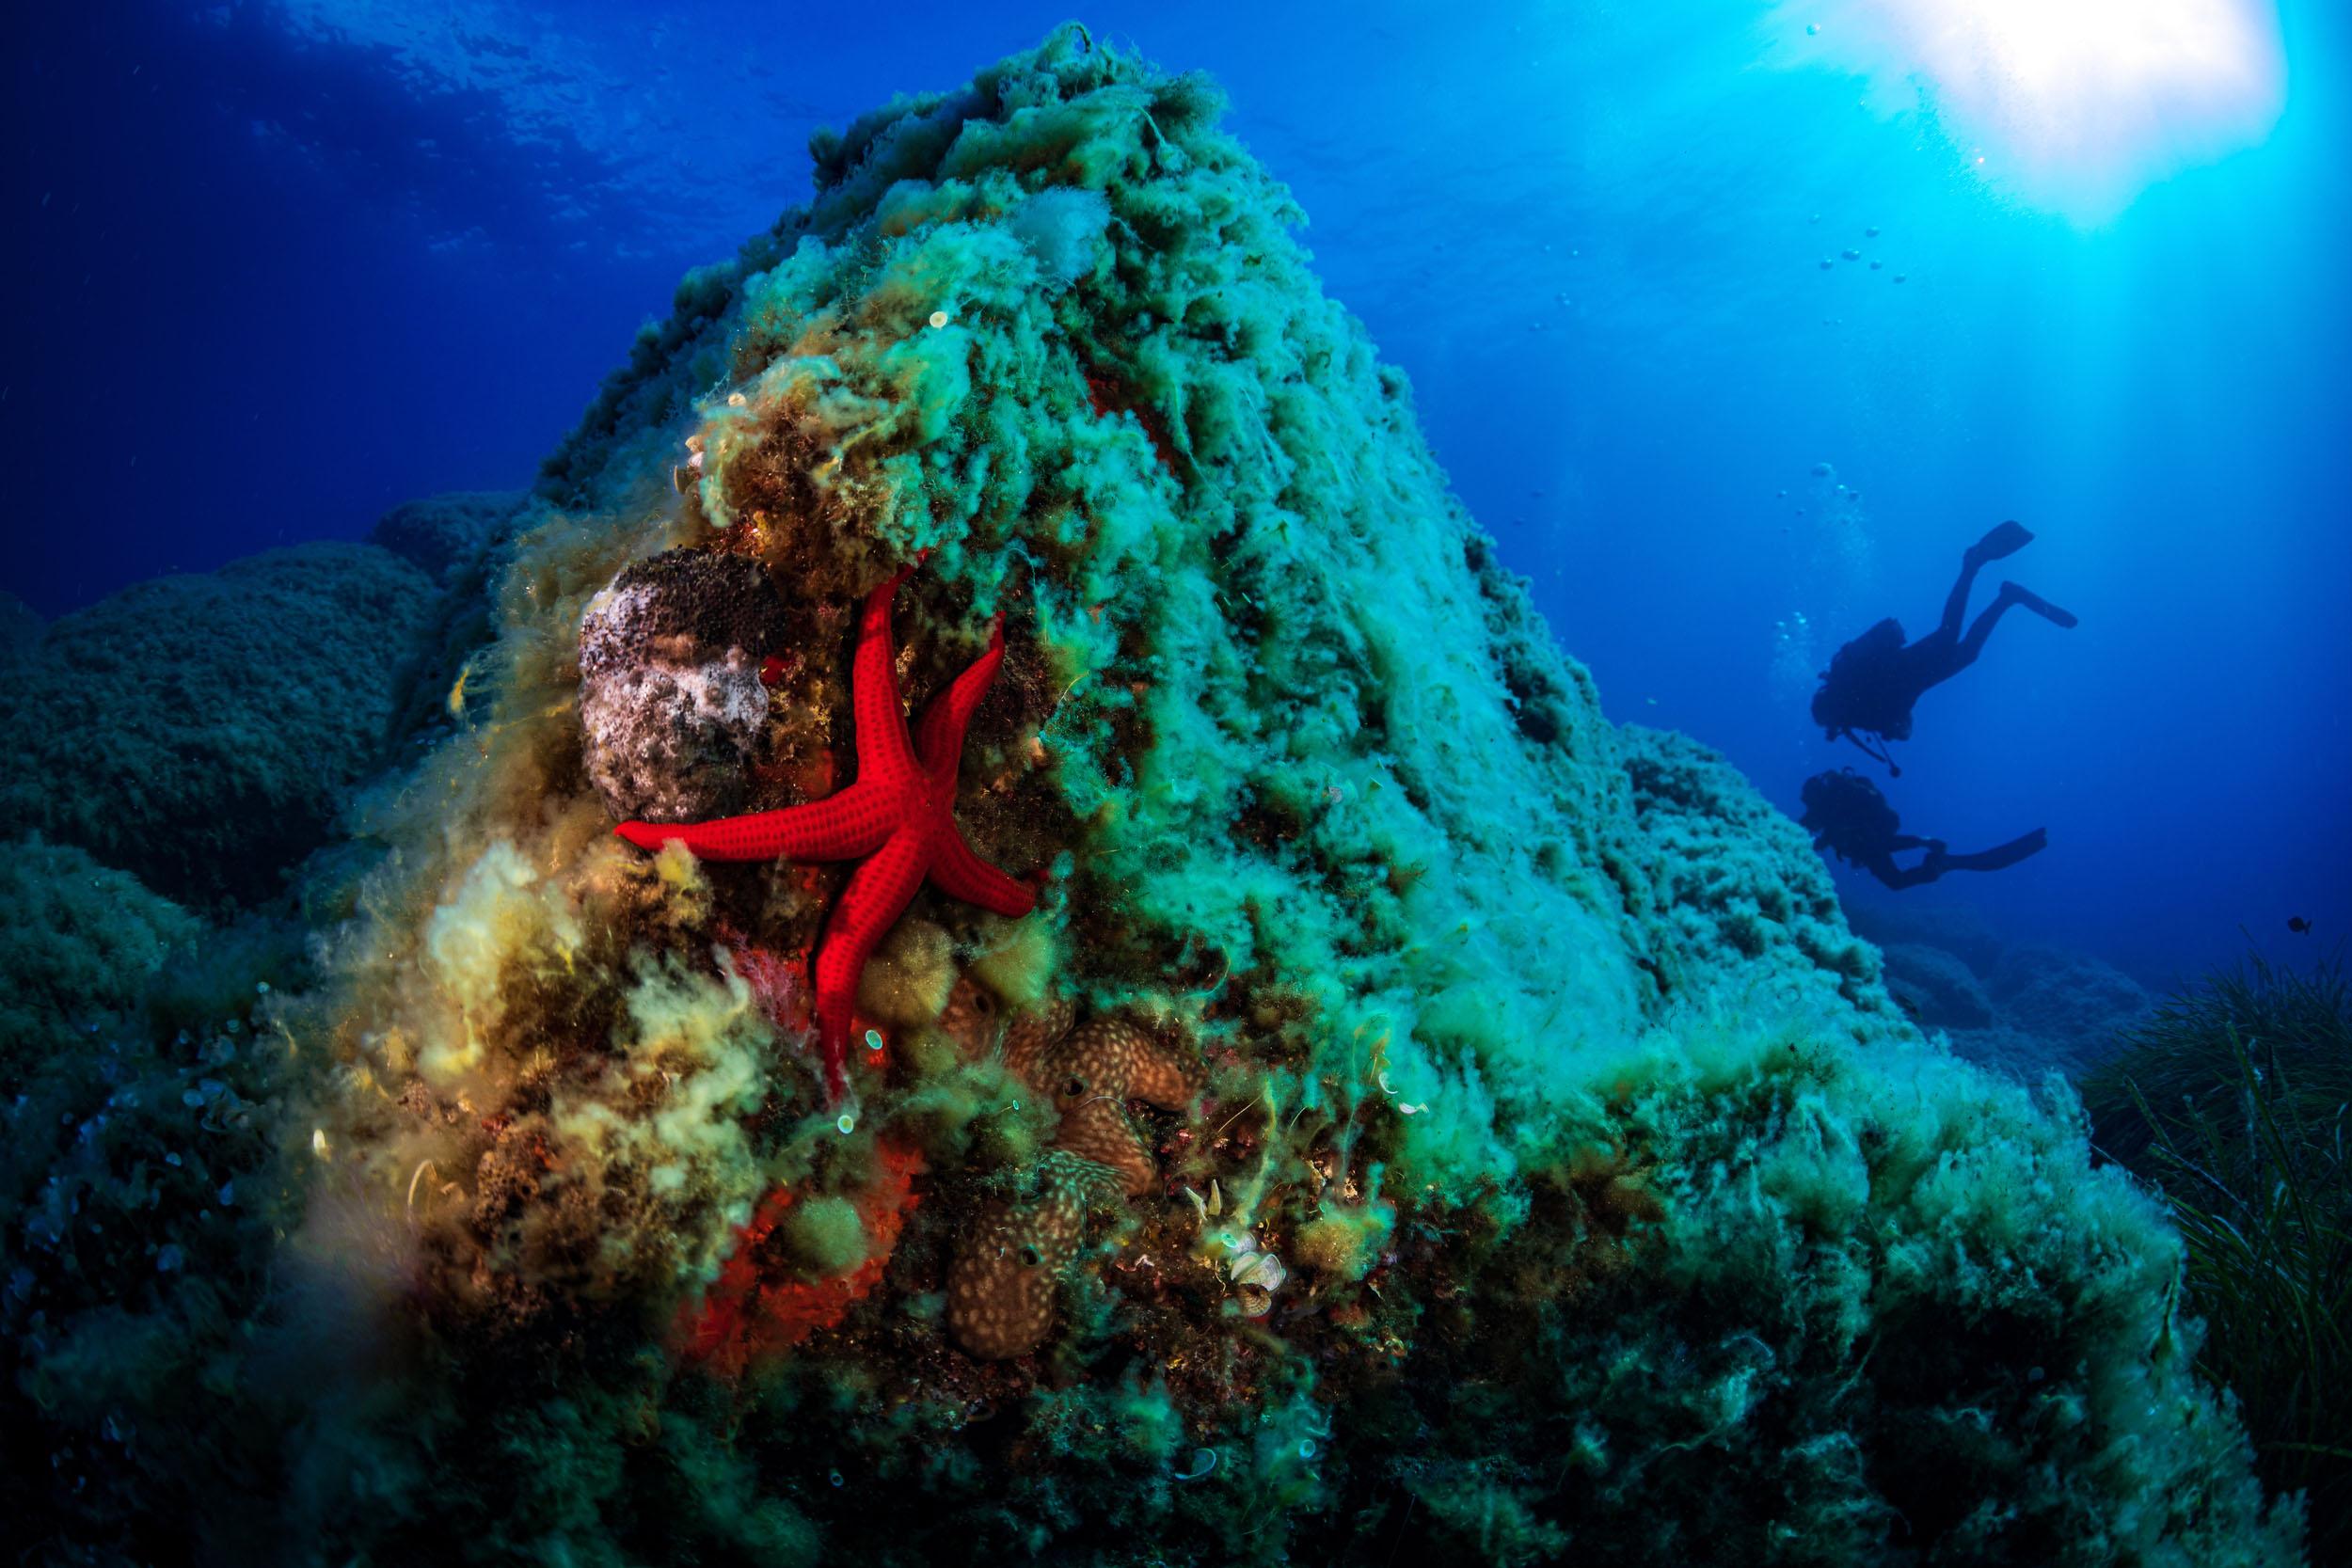 A red starfish clings to the side of a mound on the seabed. A diver is visible in the background.